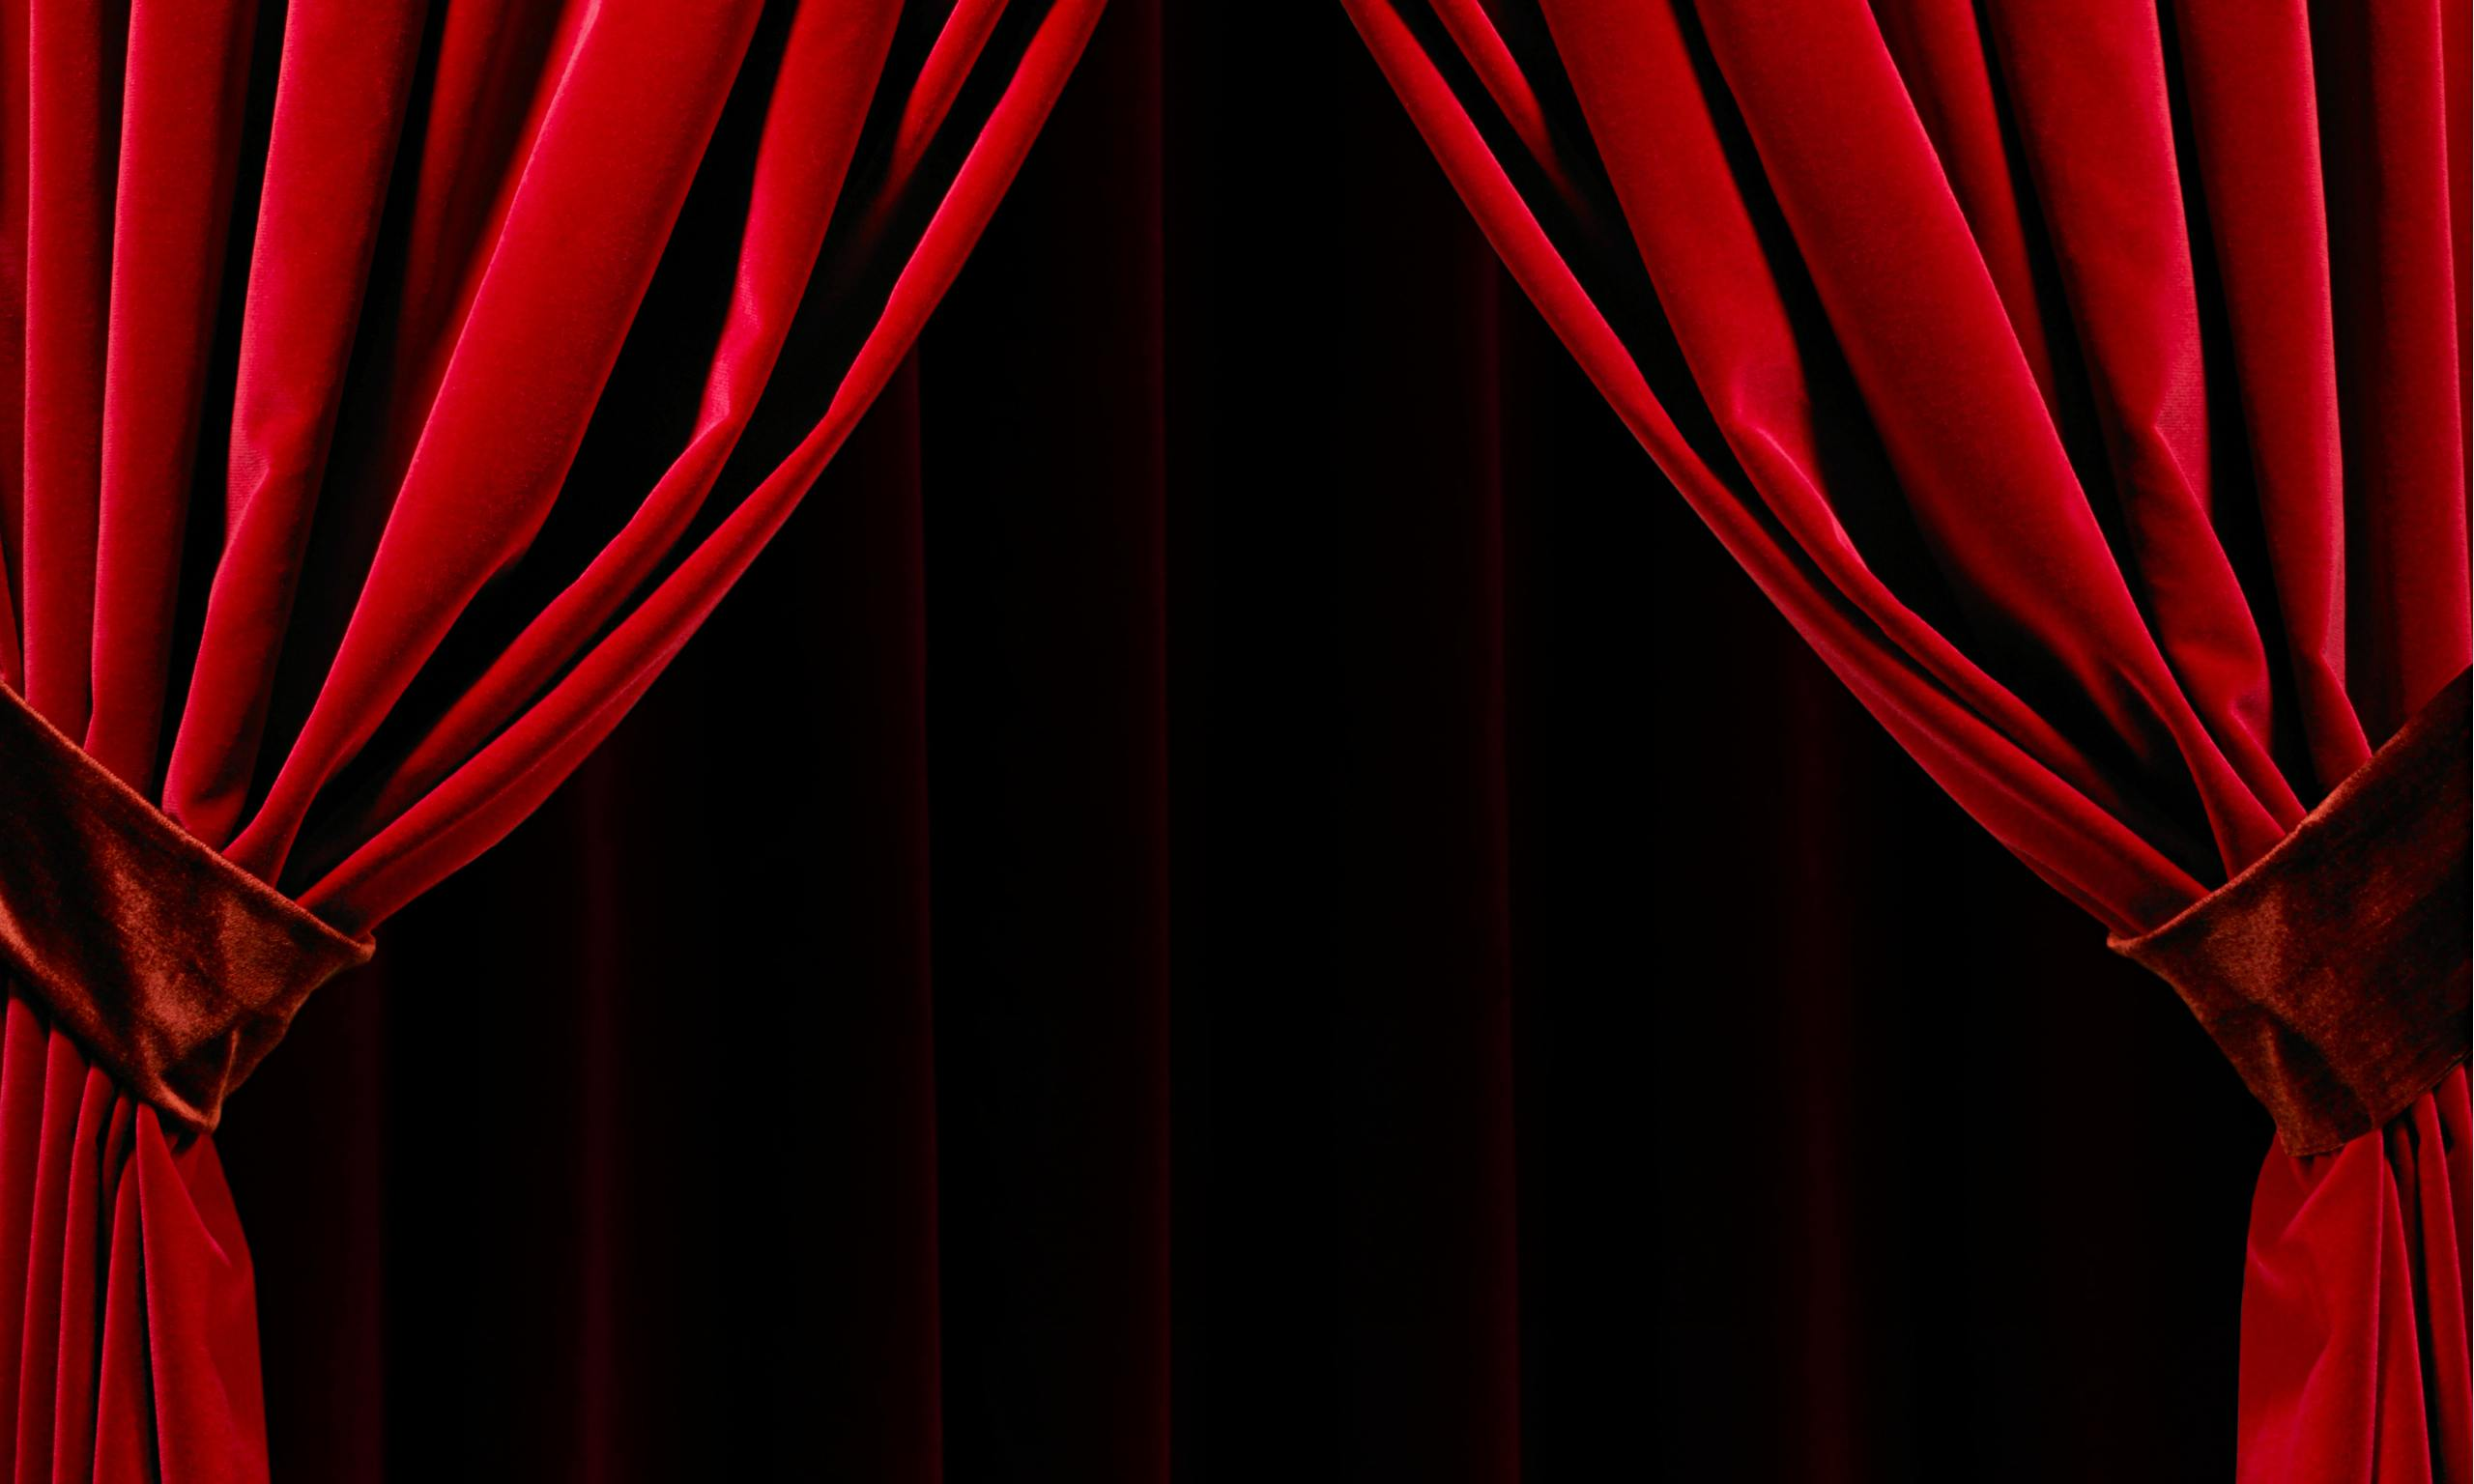 Red stage curtains open -